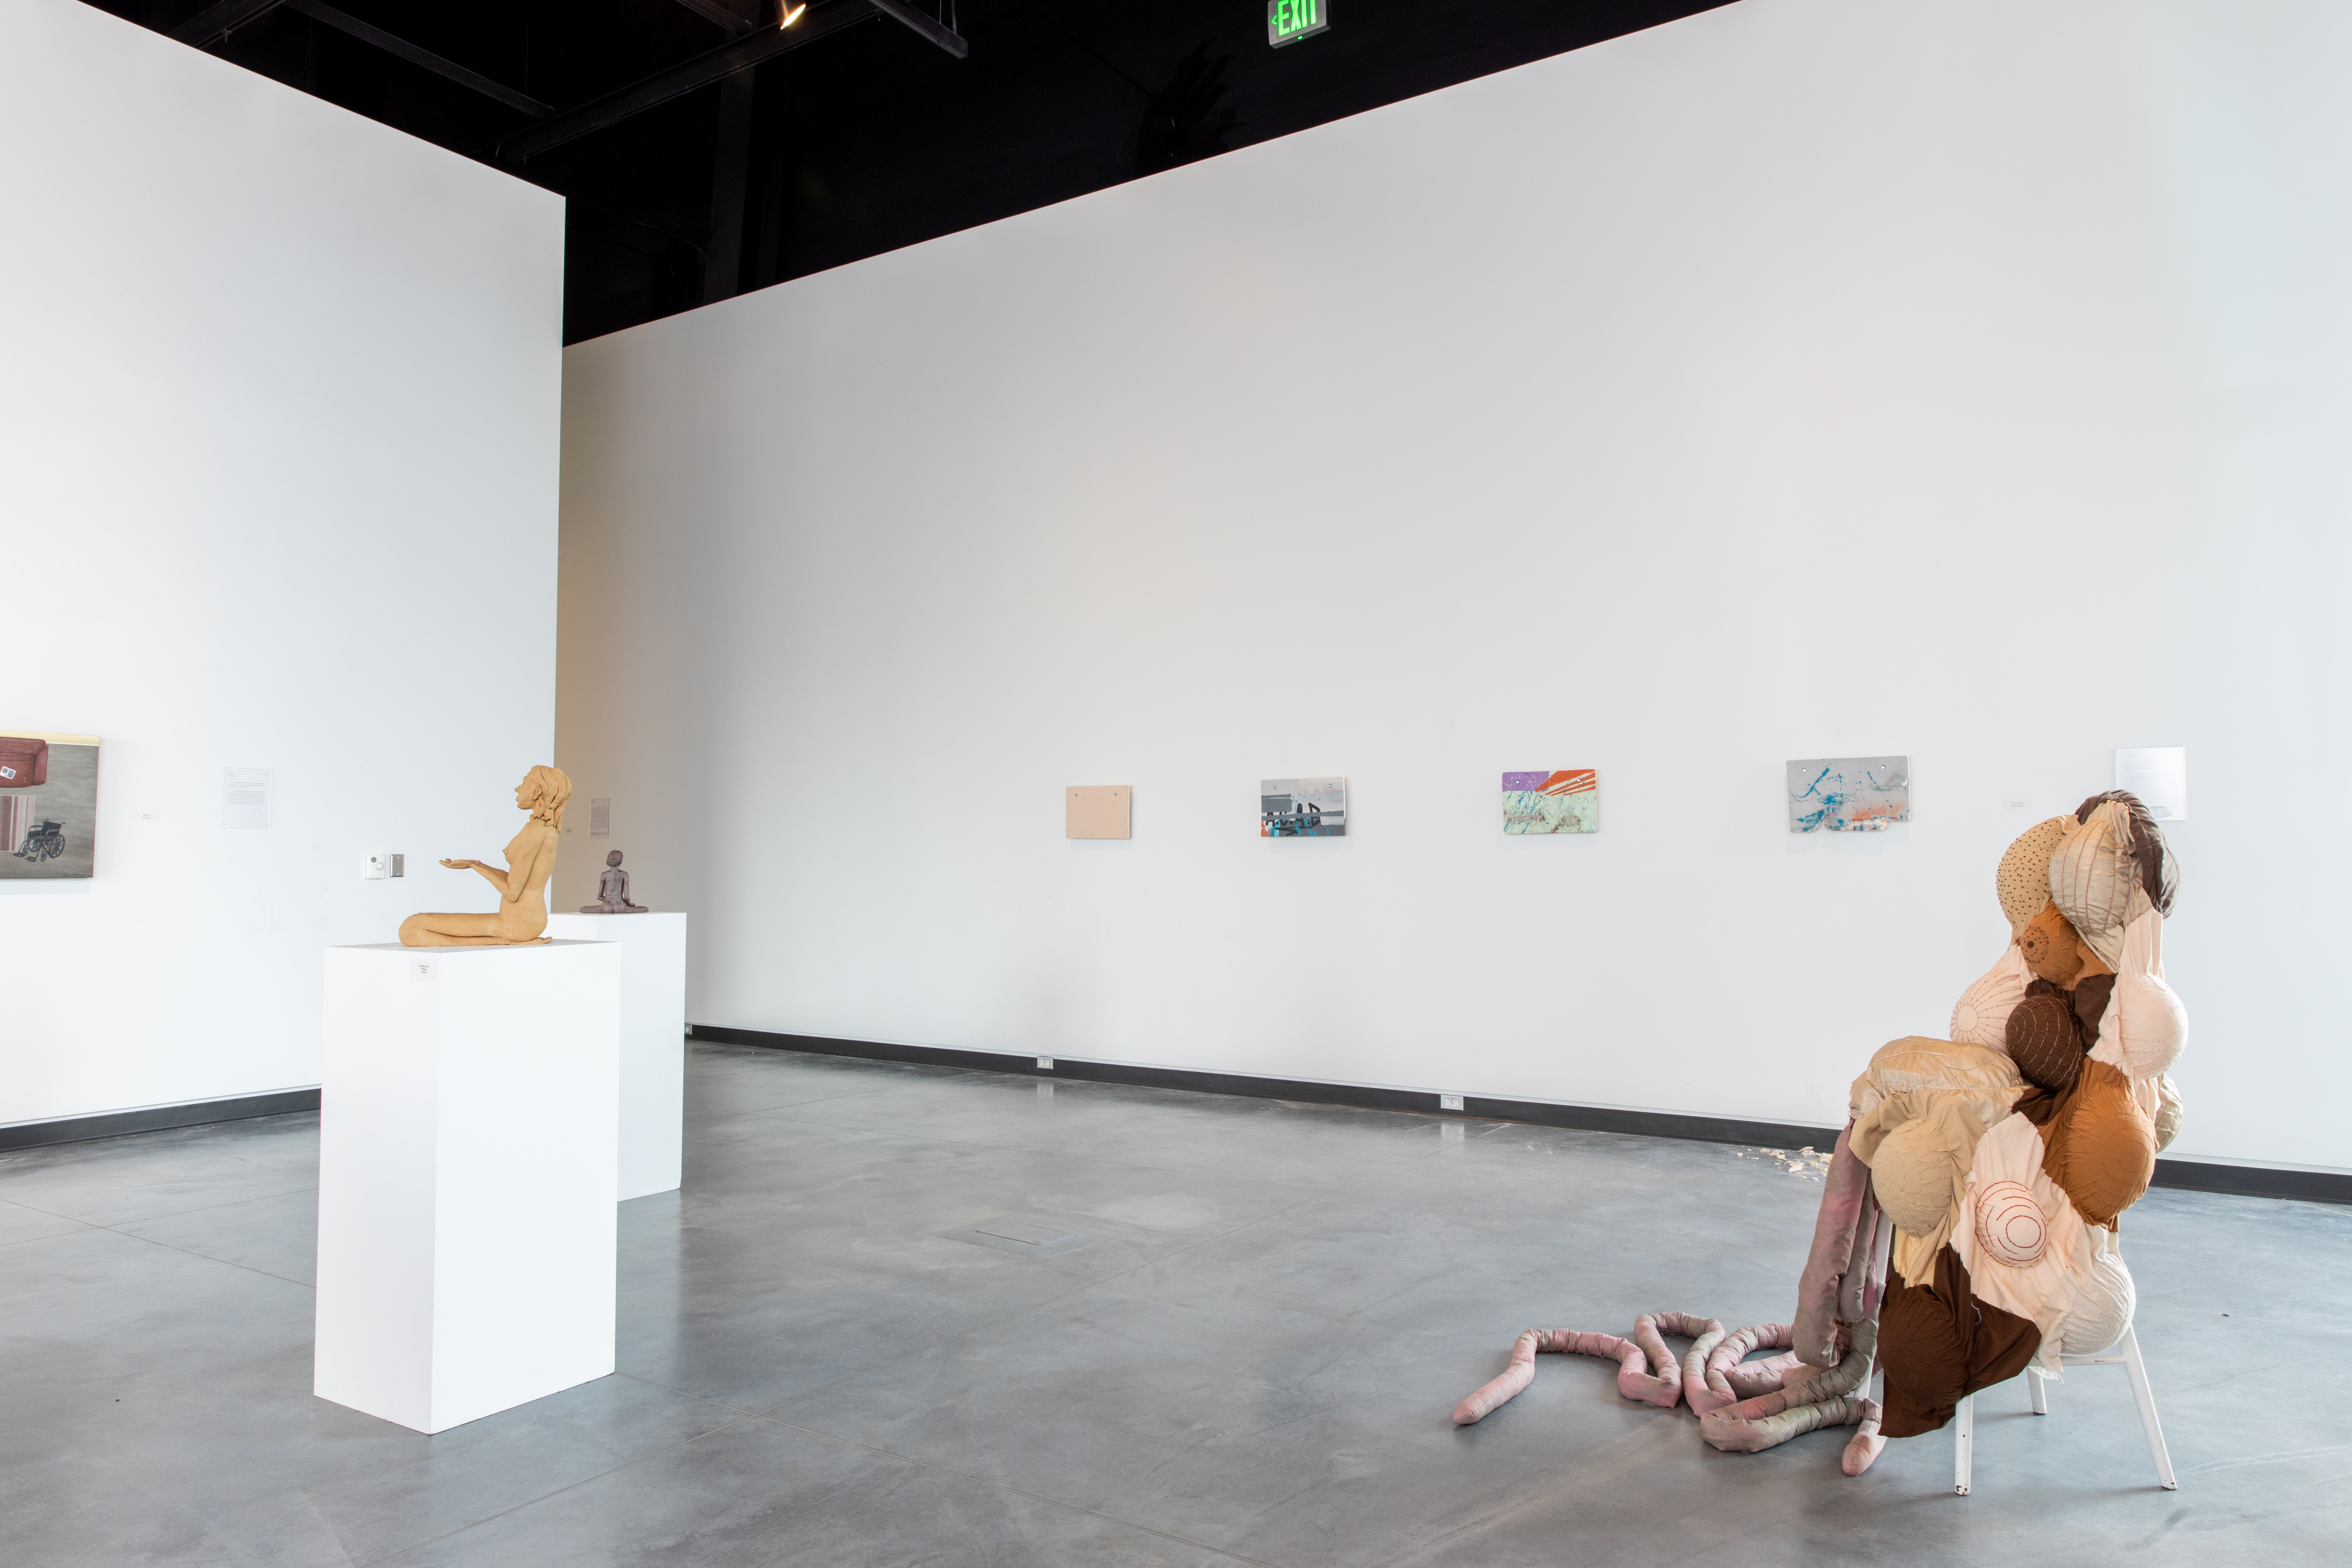 Blue Galleries space with art displayed on walls, pedestals and a large floor piece.